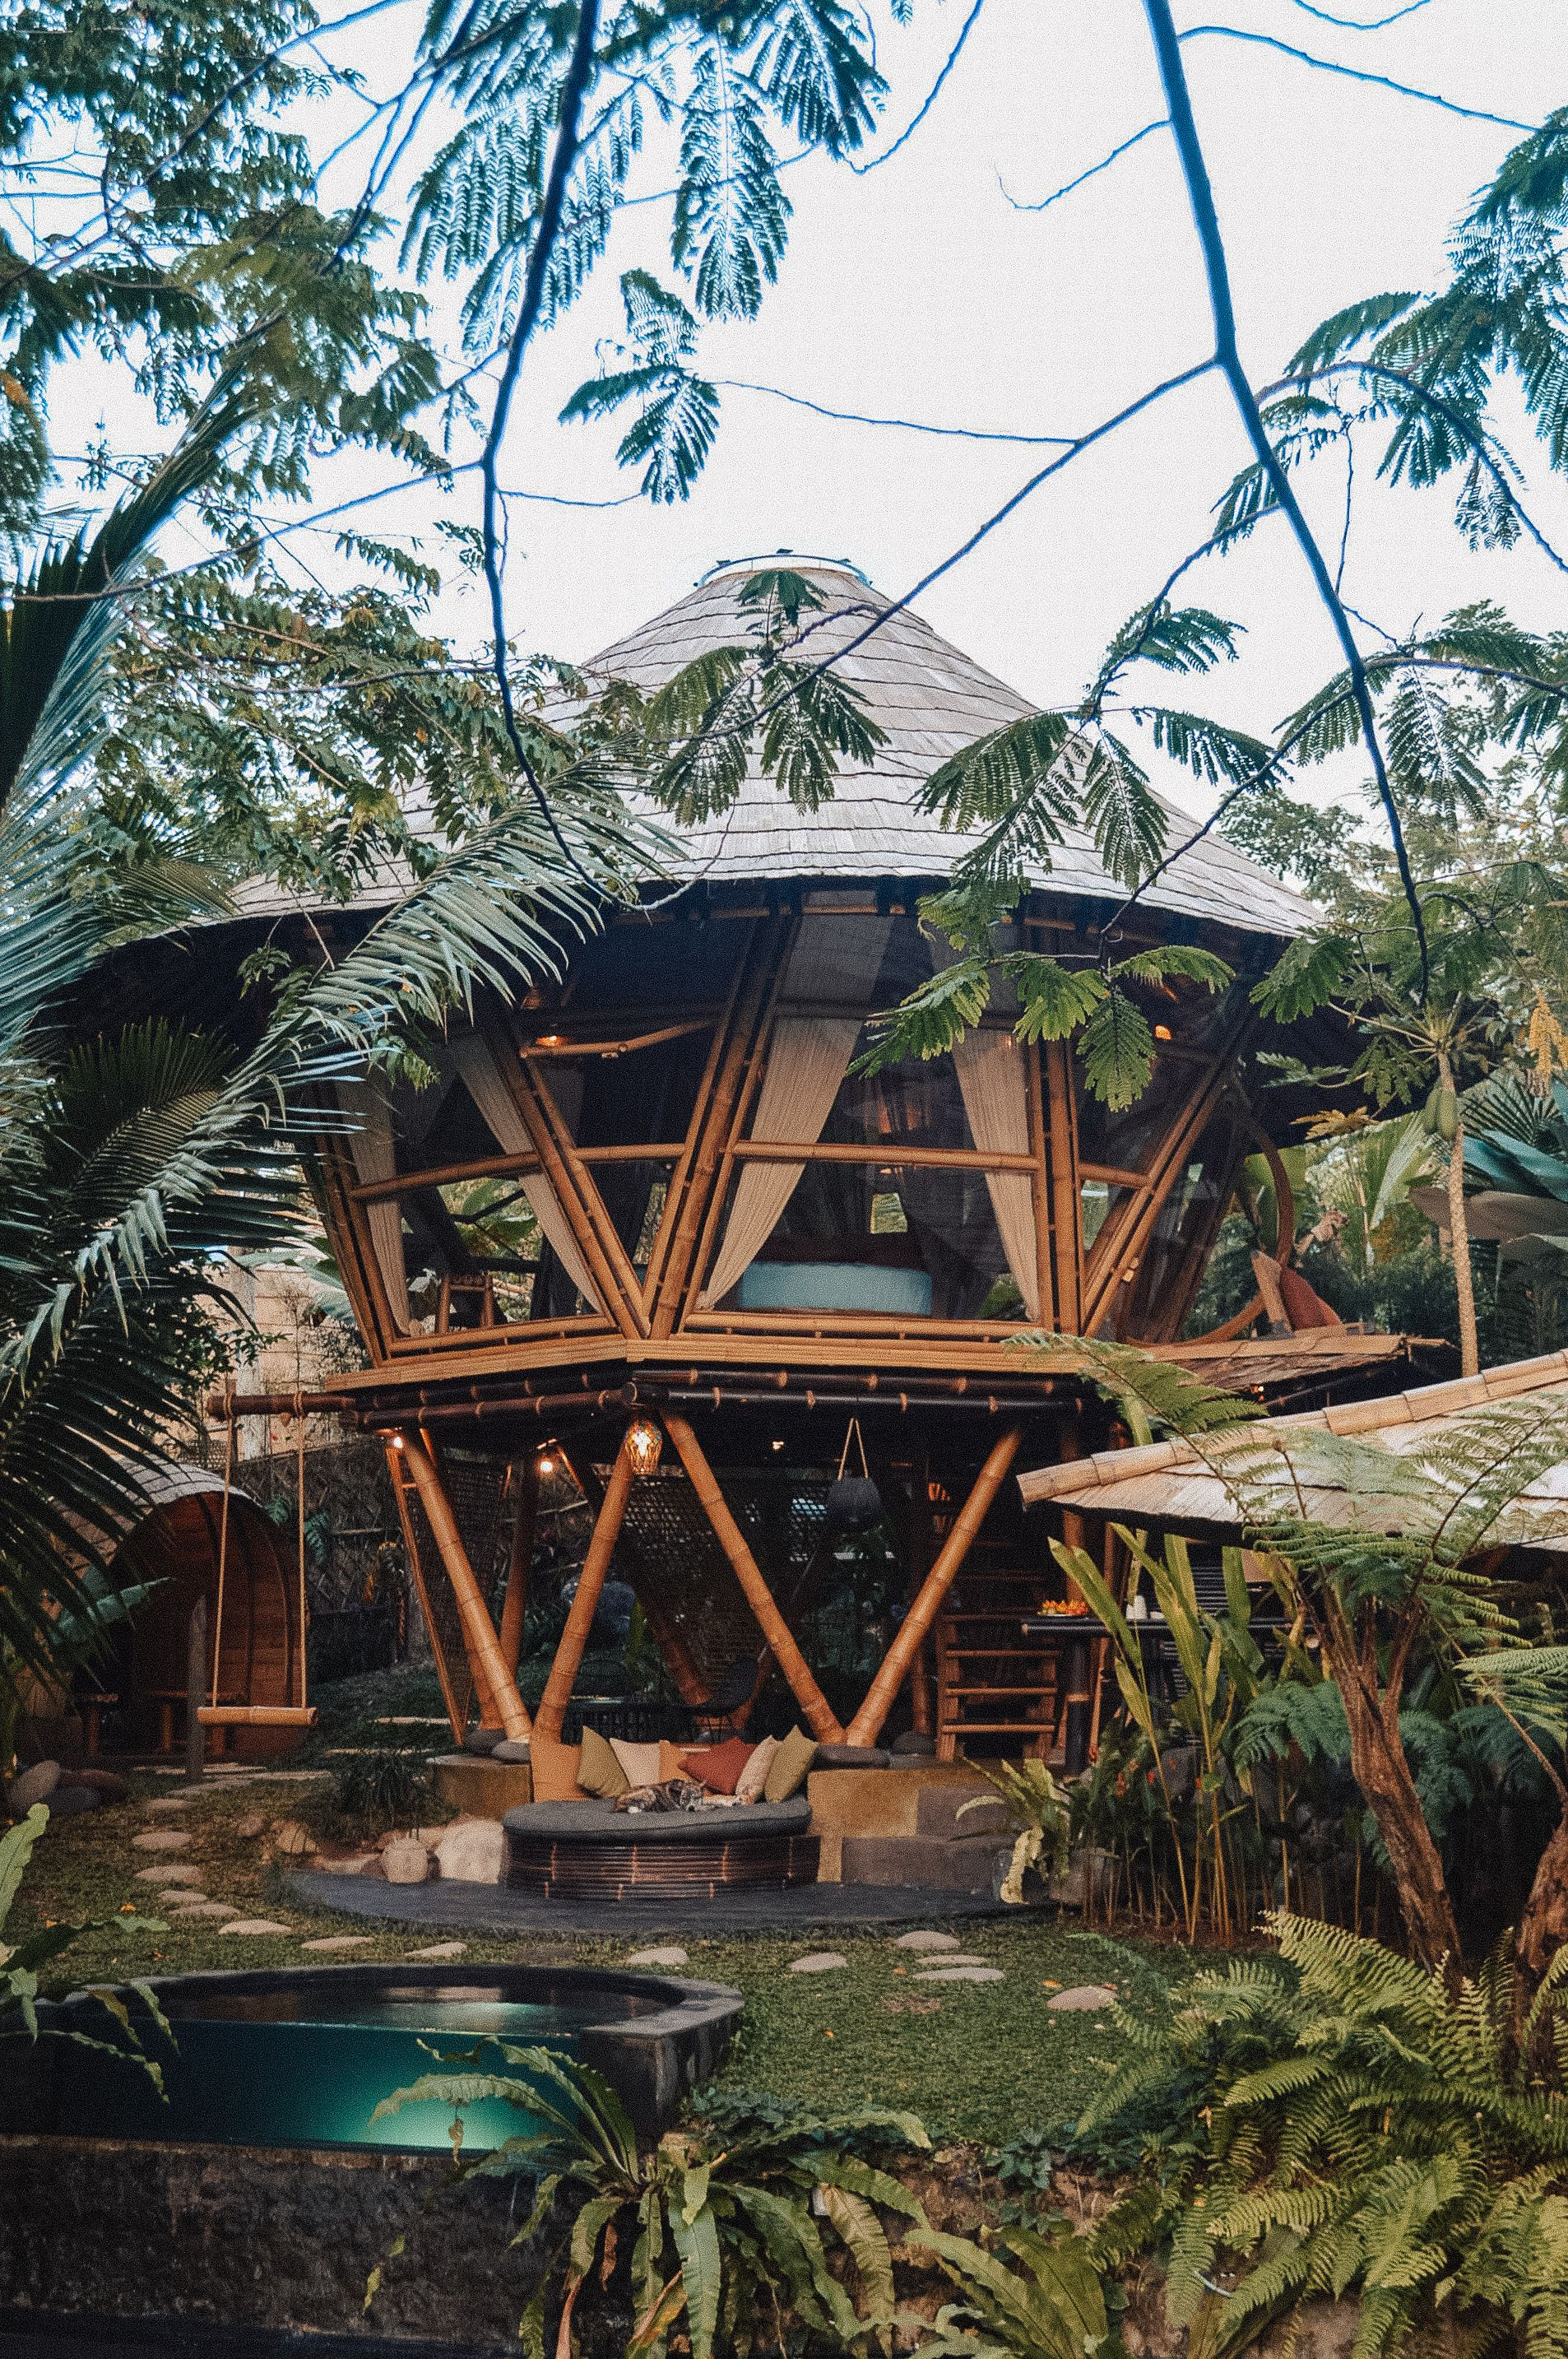 Https Www Airbnb Rooms 24043648 Eco Bamboo Home In